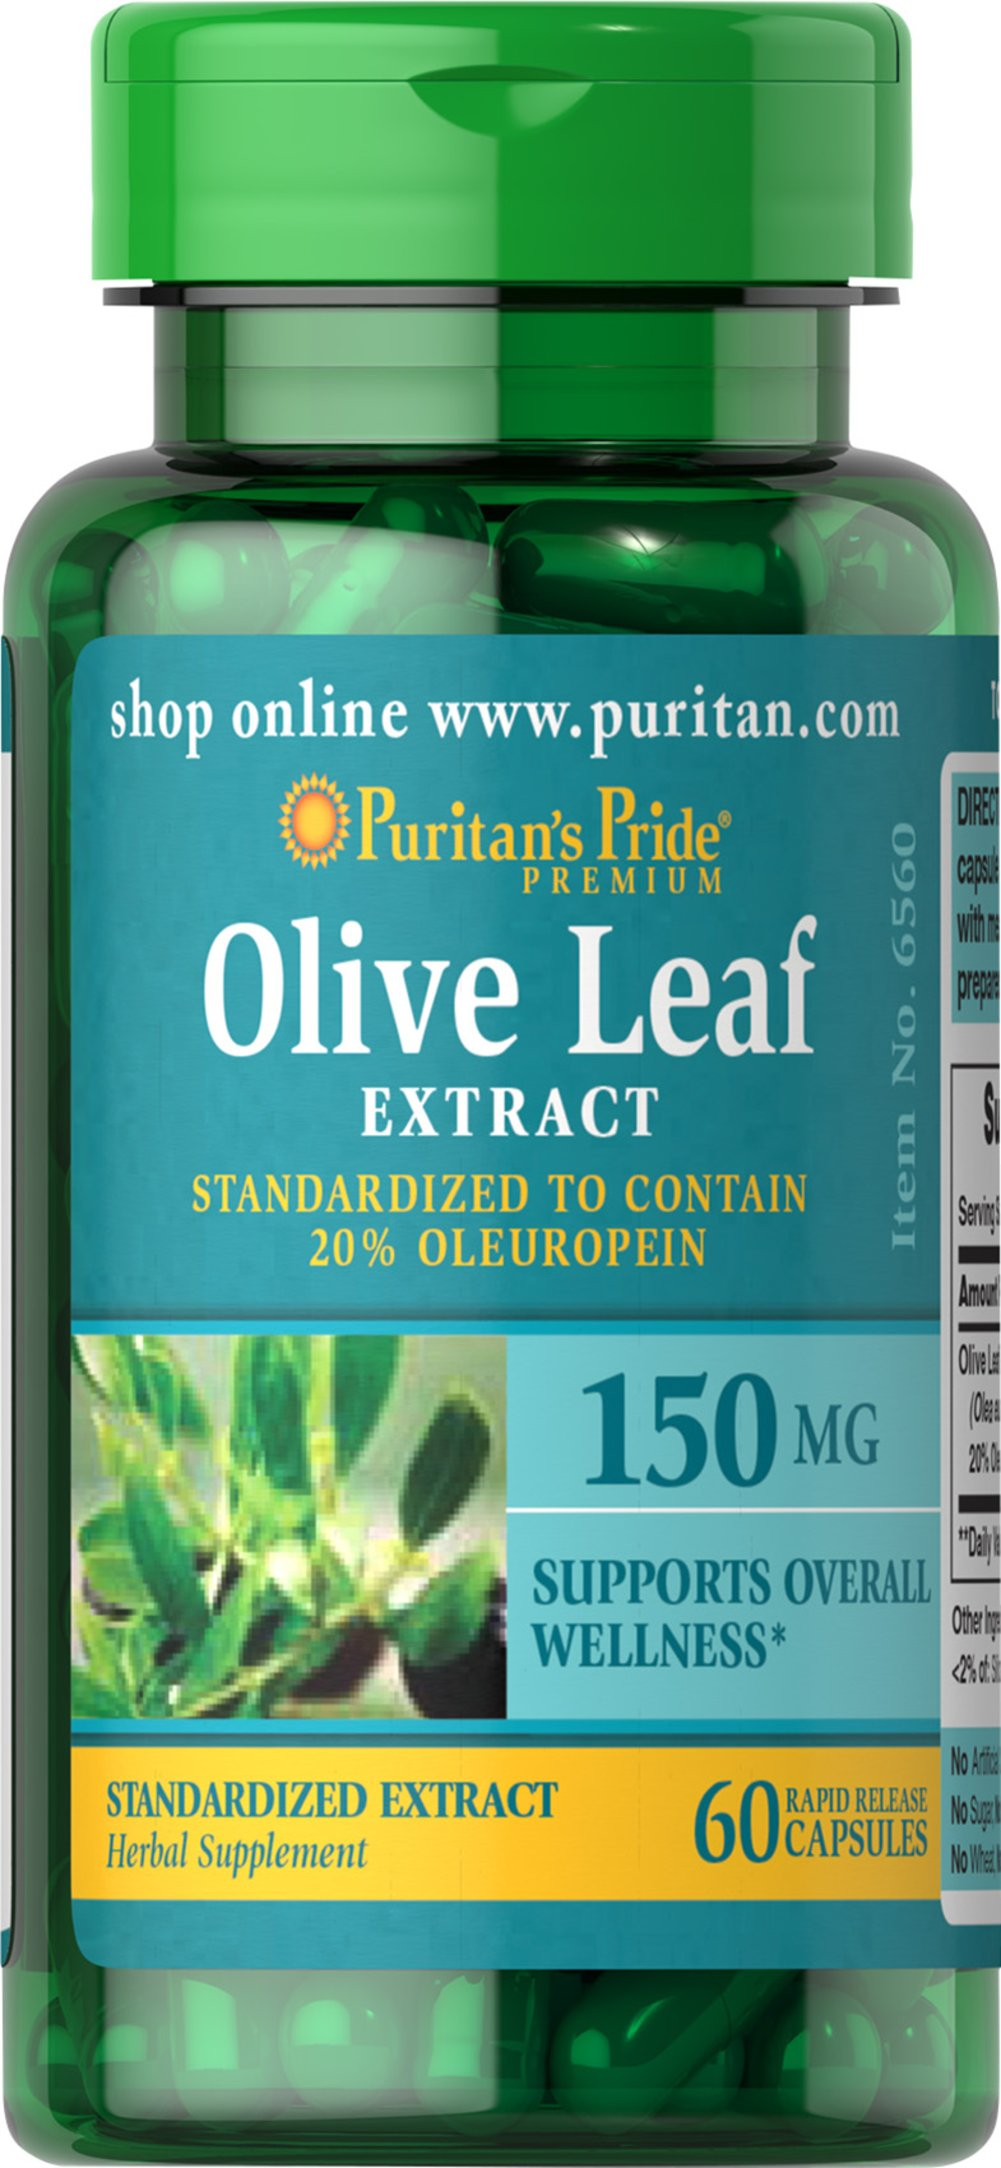 Olive Leaf Standardized Extract 150 mg <p>Our Olive Leaf Extract is derived from the leaves of the Mediterranean olive tree. This extract is standardized for 20% Oleuropein, a powerful phytonutrient. Olive leaves have been used for overall well-being for thousands of years by people in countries bordering the Mediterranean.</p> 60 Capsules 150 mg $9.29